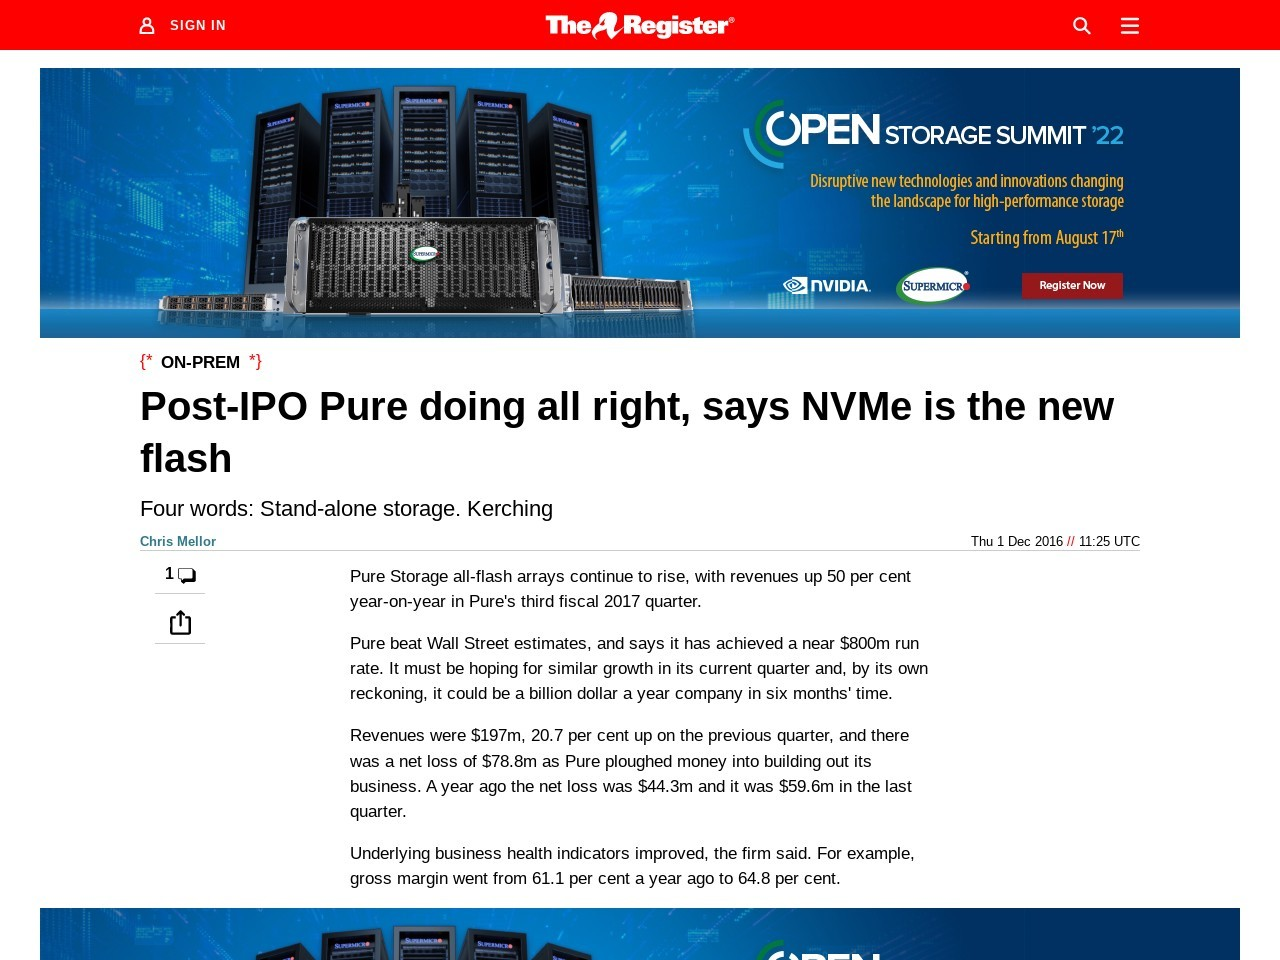 Post-IPO Pure doing all right, says NVMe is the new flash